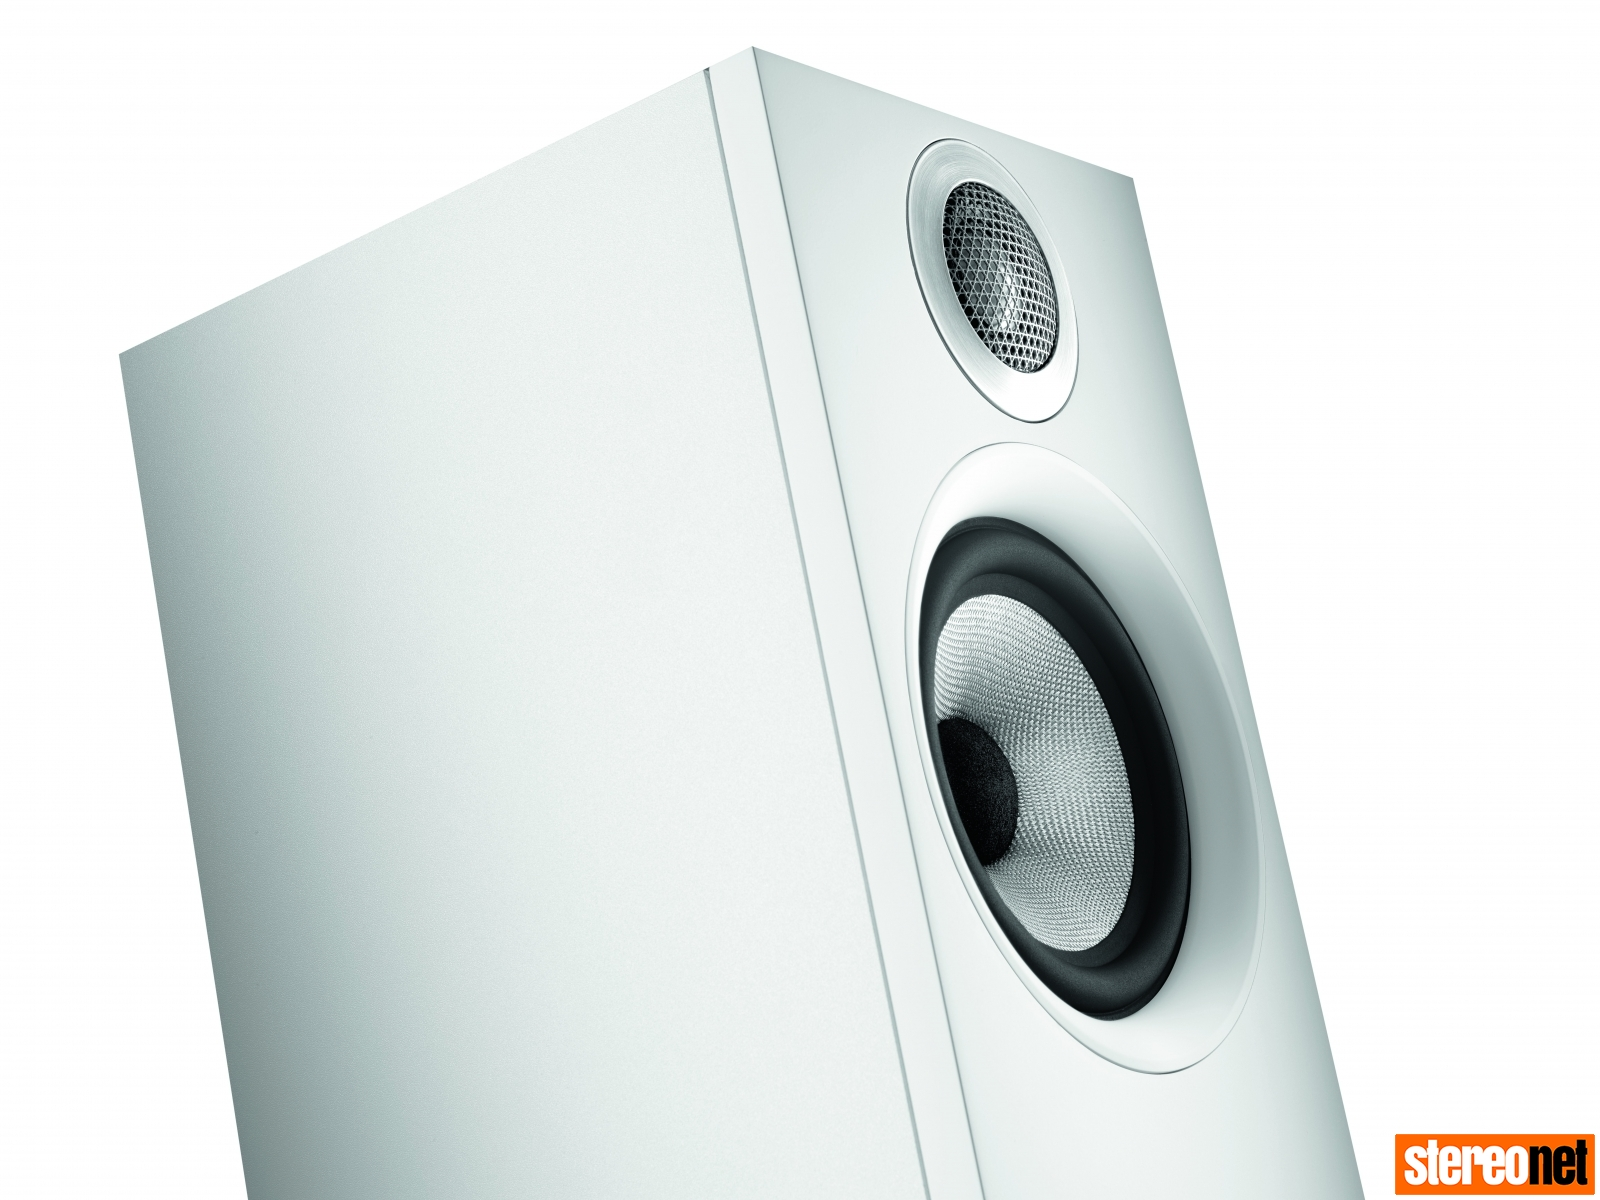 B&W 607 speaker in white